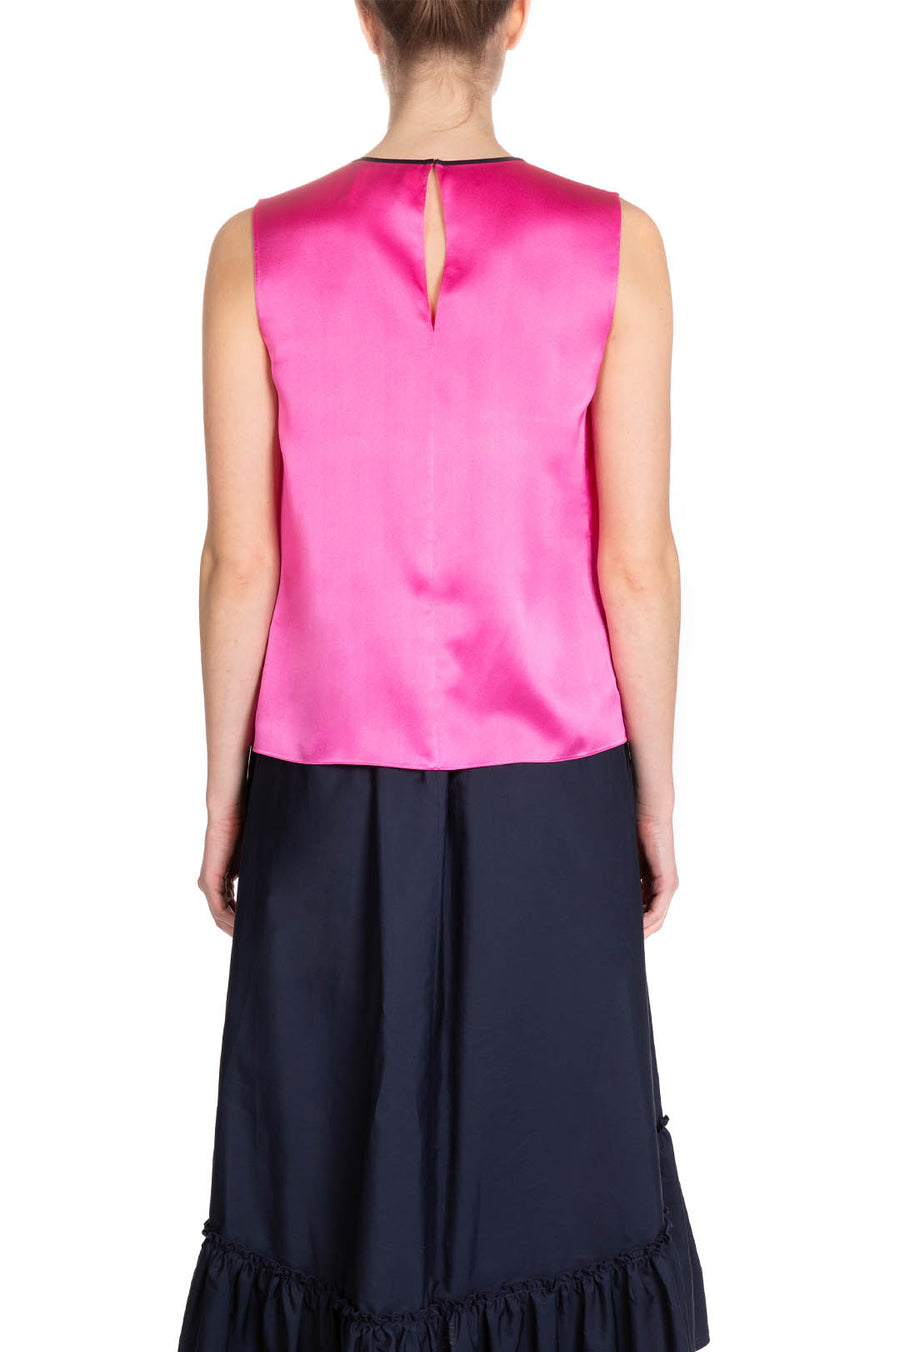 AURA TOP French Pink & Midnight